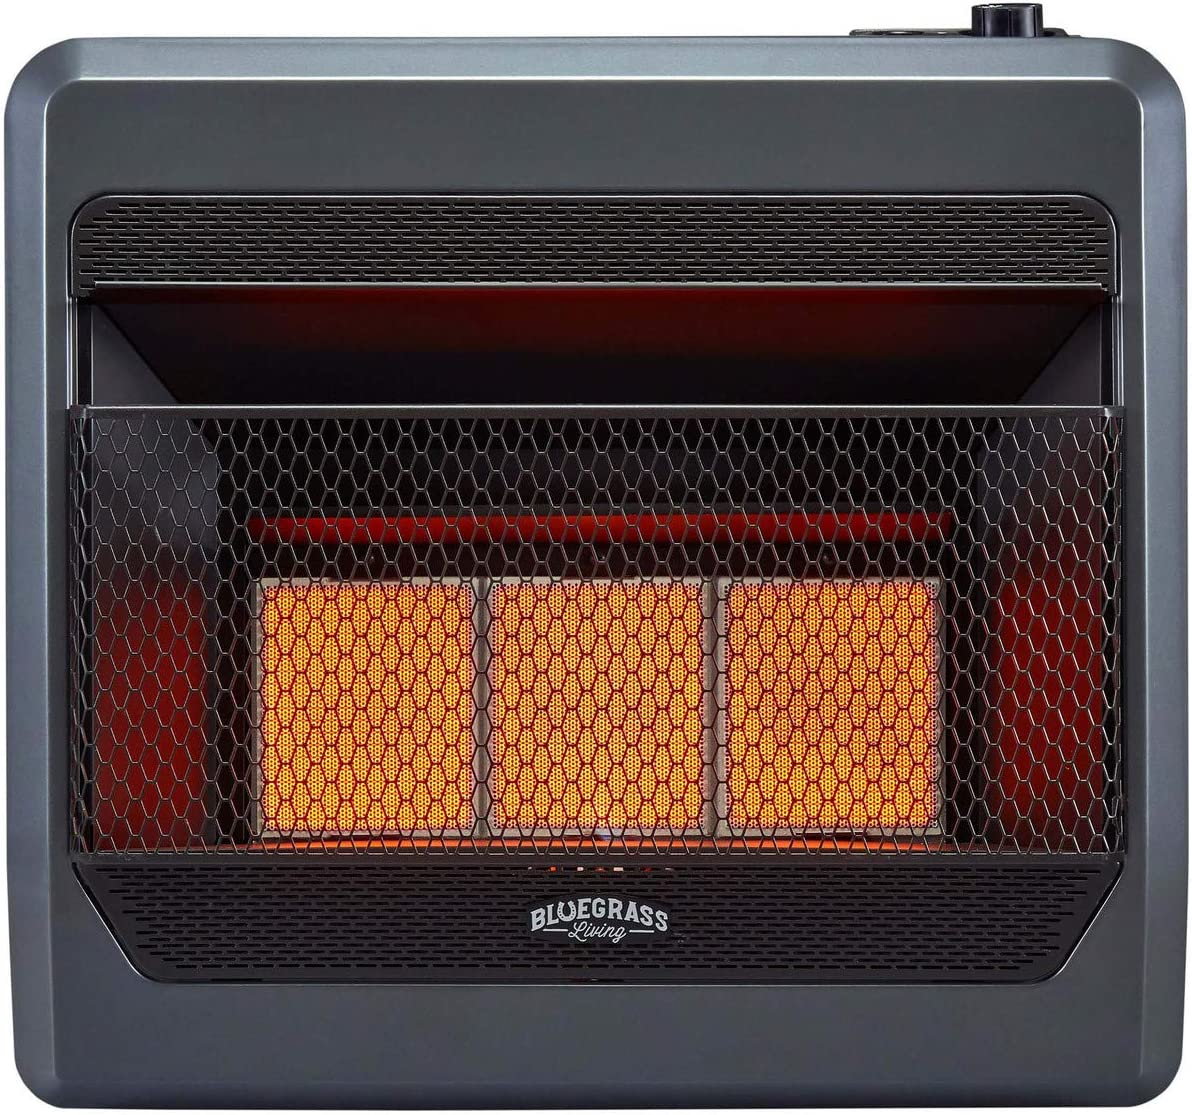 Bluegrass Living B28TPIR-BB Propane Vent Free Infrared Gas Space Heater with Blower and Base Feet-28,000, T-Stat Control, 30,000 BTU, Black